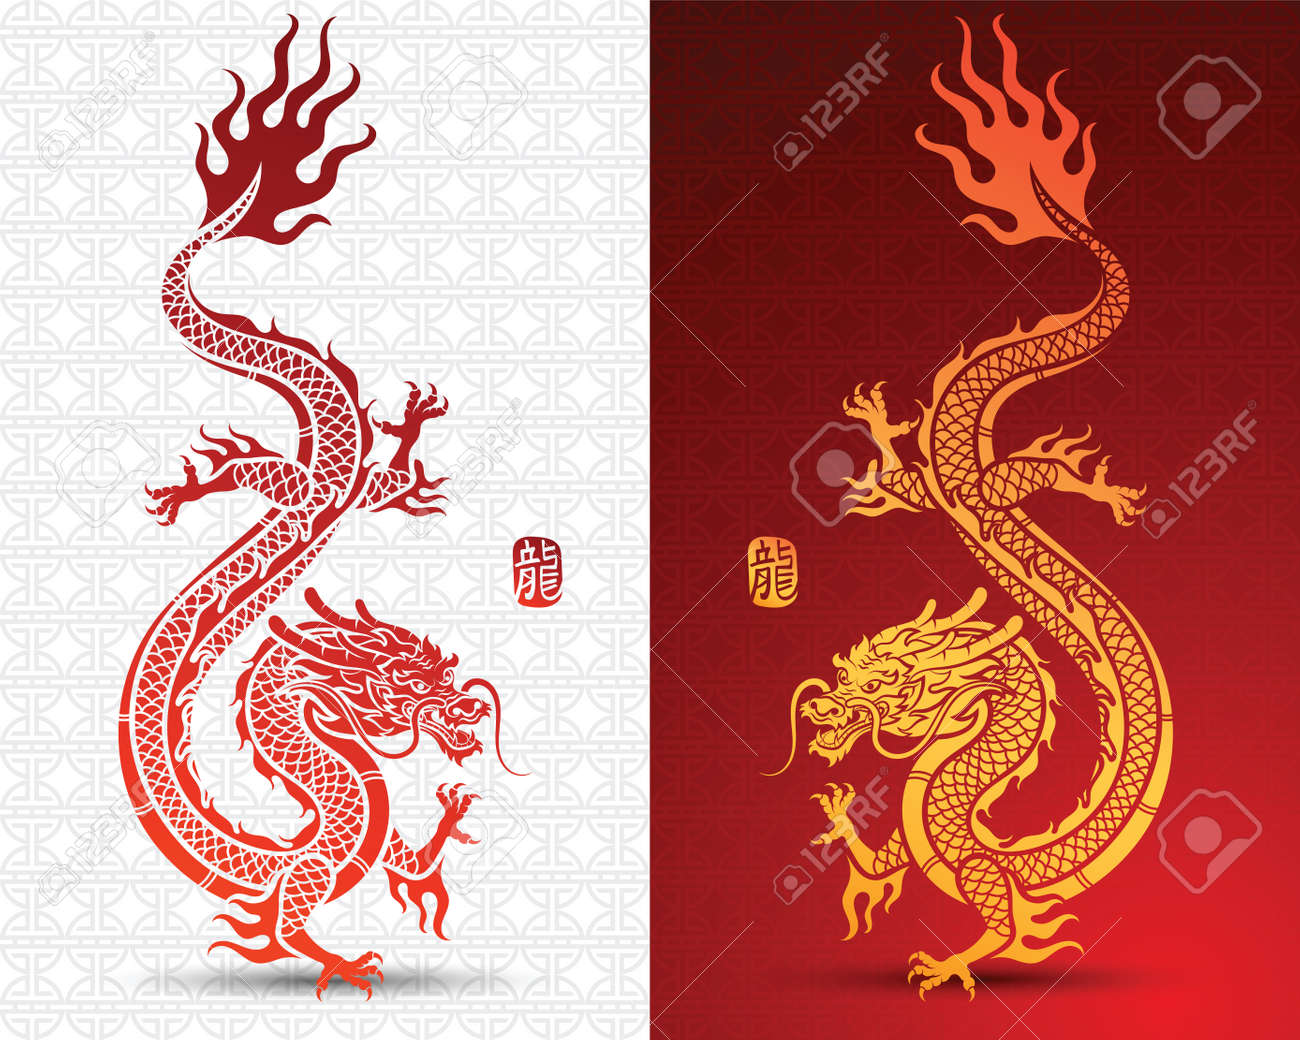 Illustration of Traditional chinese Dragon ,chinese character translate dragon,vector illustration - 74911078